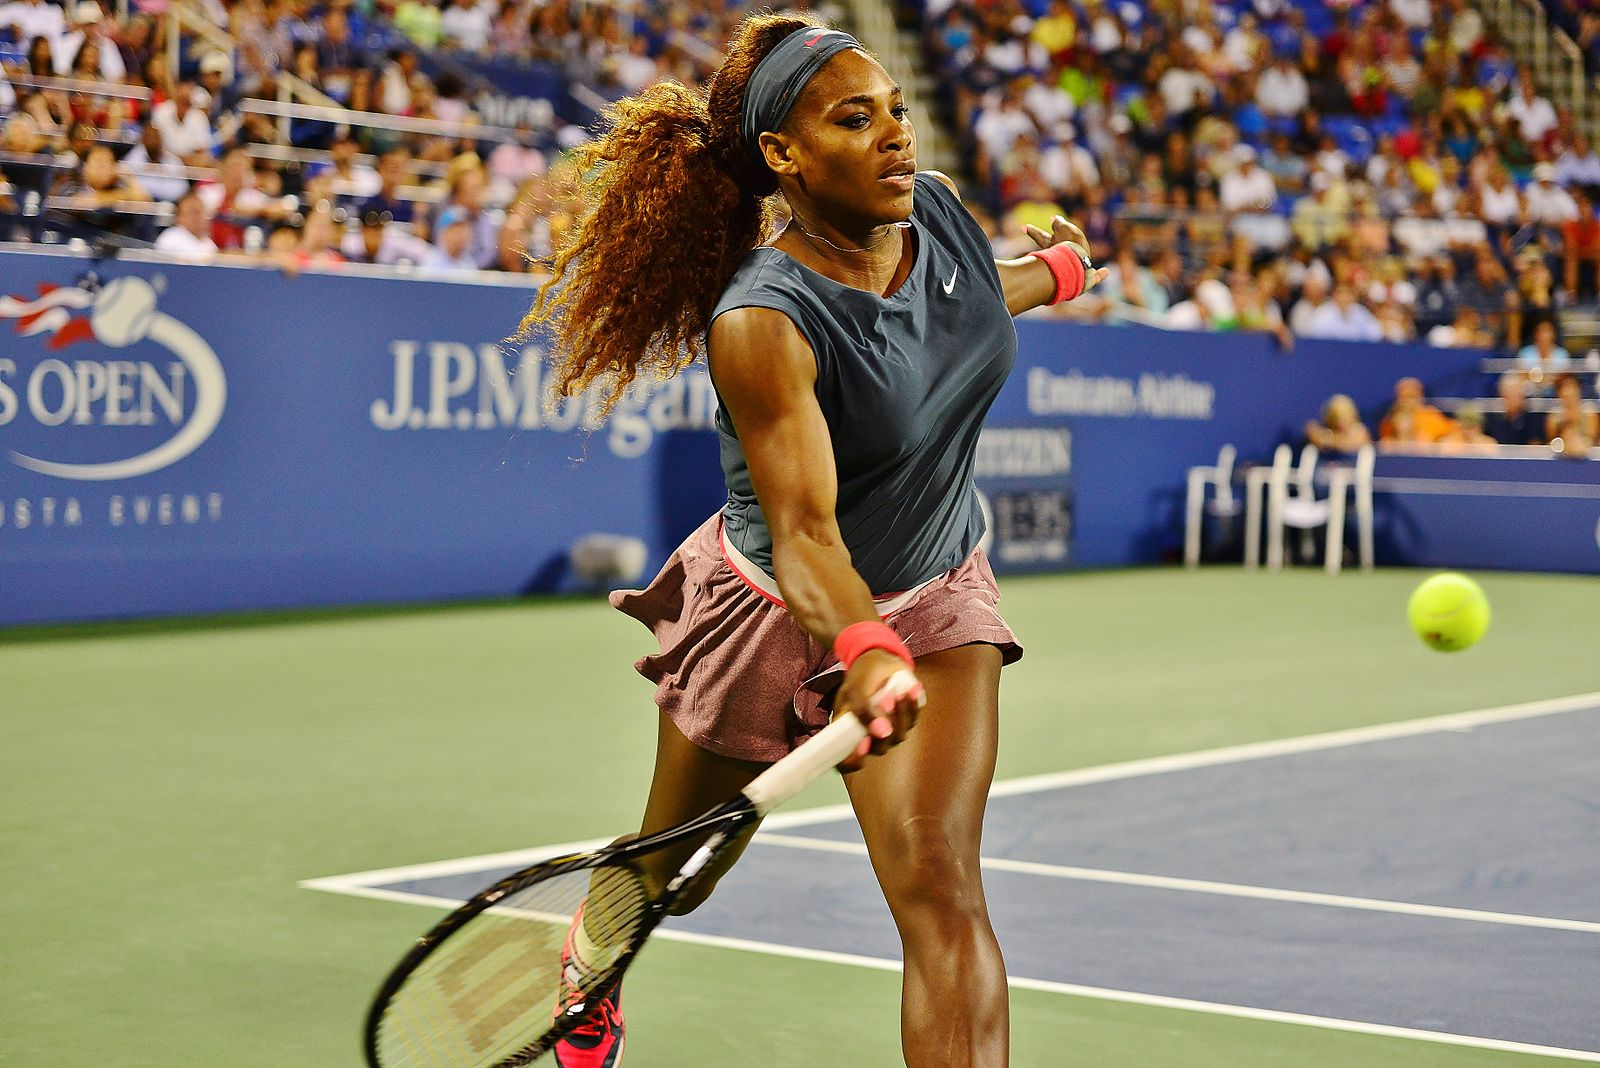 Tennis Umpires Are Reportedly Considering Boycott of Serena Williams Matches After US Open Incident